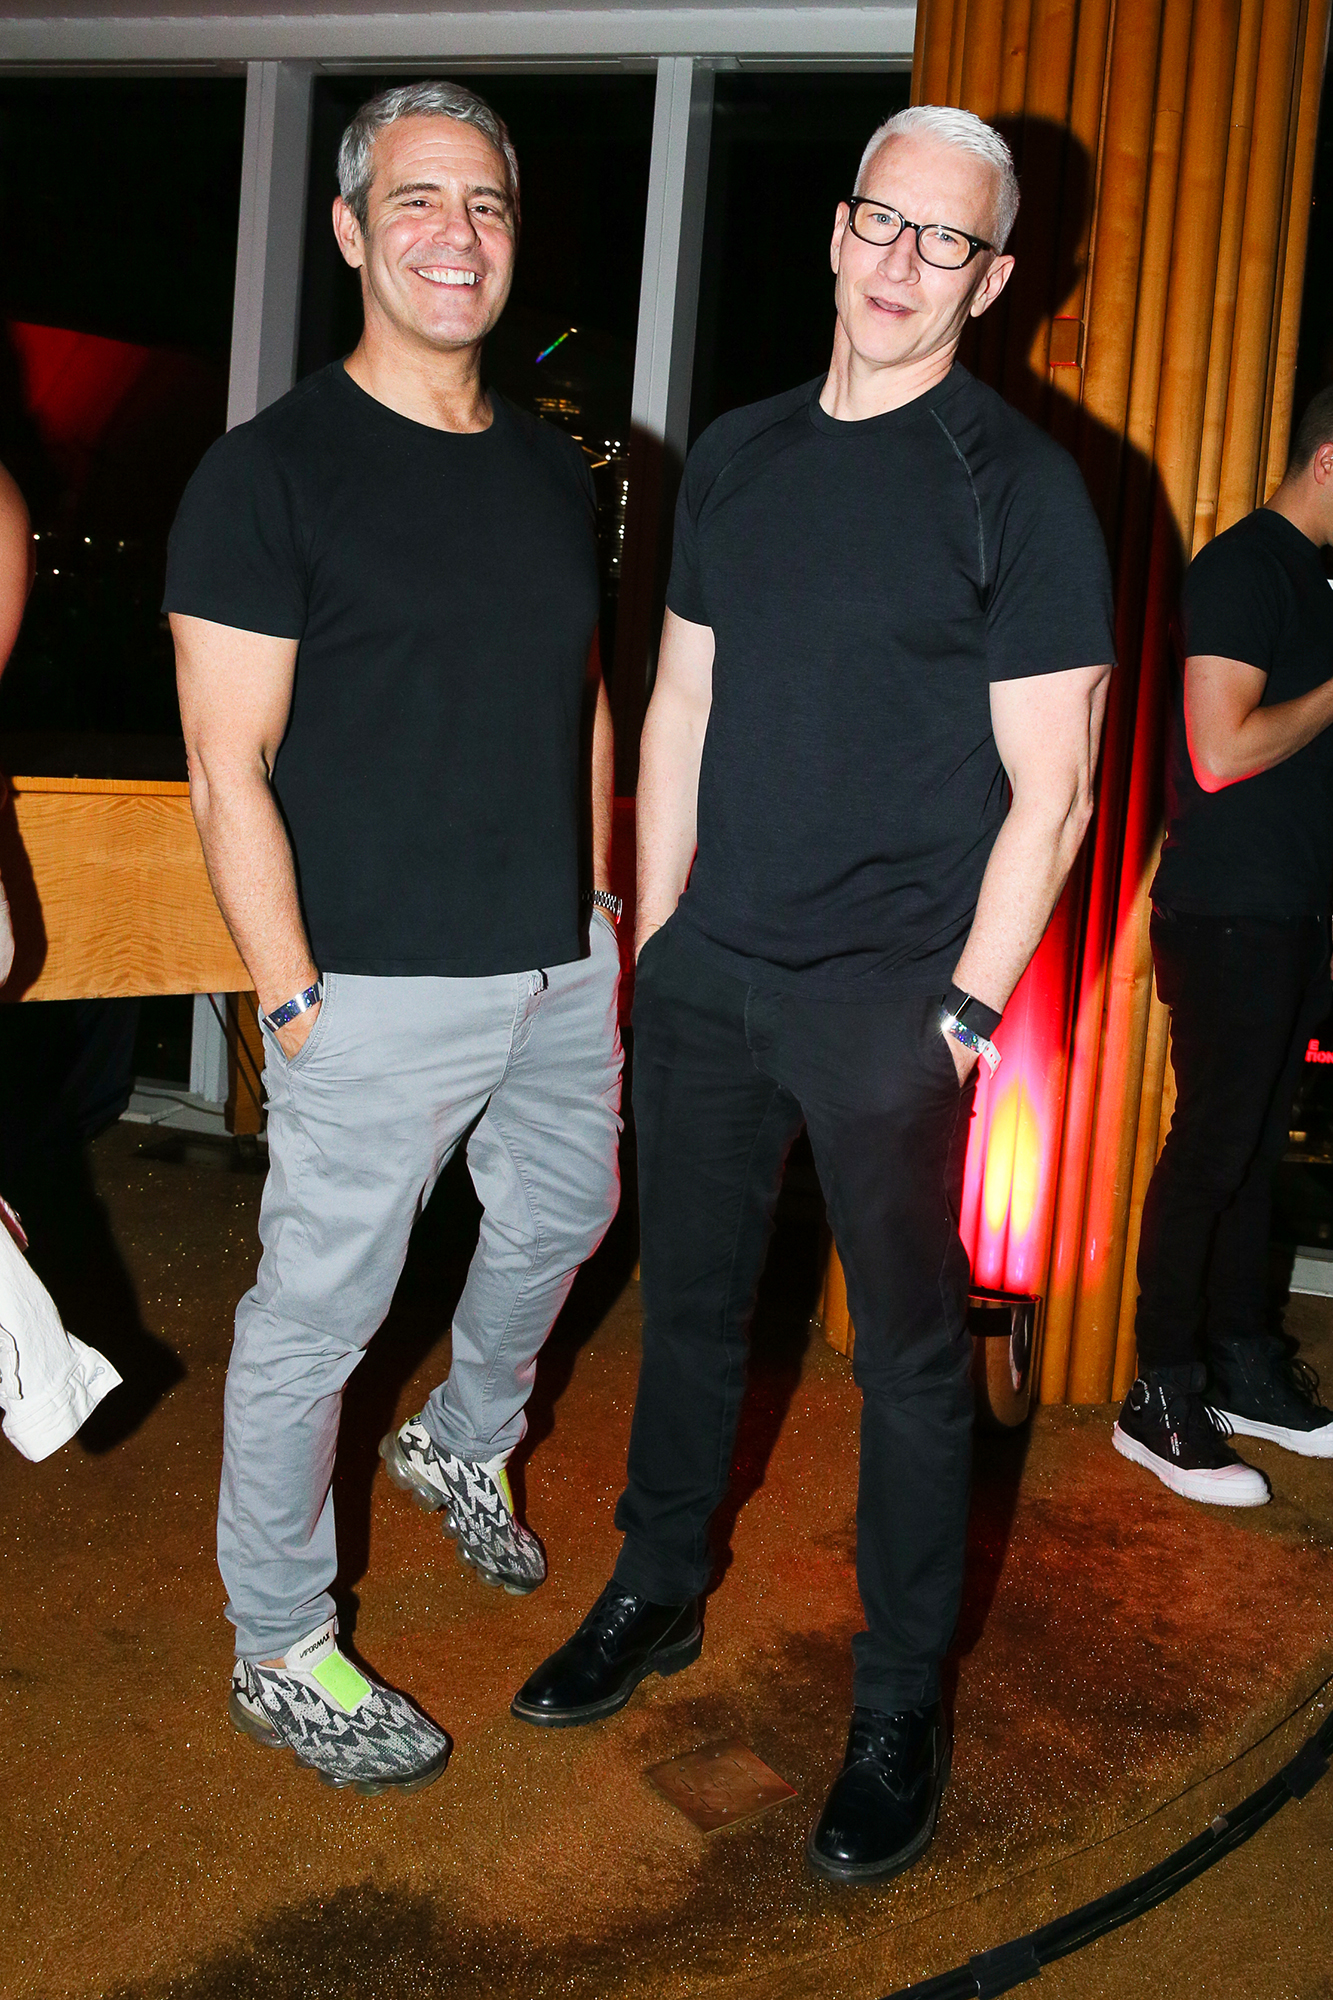 Andy Cohen and Anderson Cooper attend The Standard, High Line Kicks-Off New York Pride with Madonna at The Standard High Line, NYC on June 24, 2021